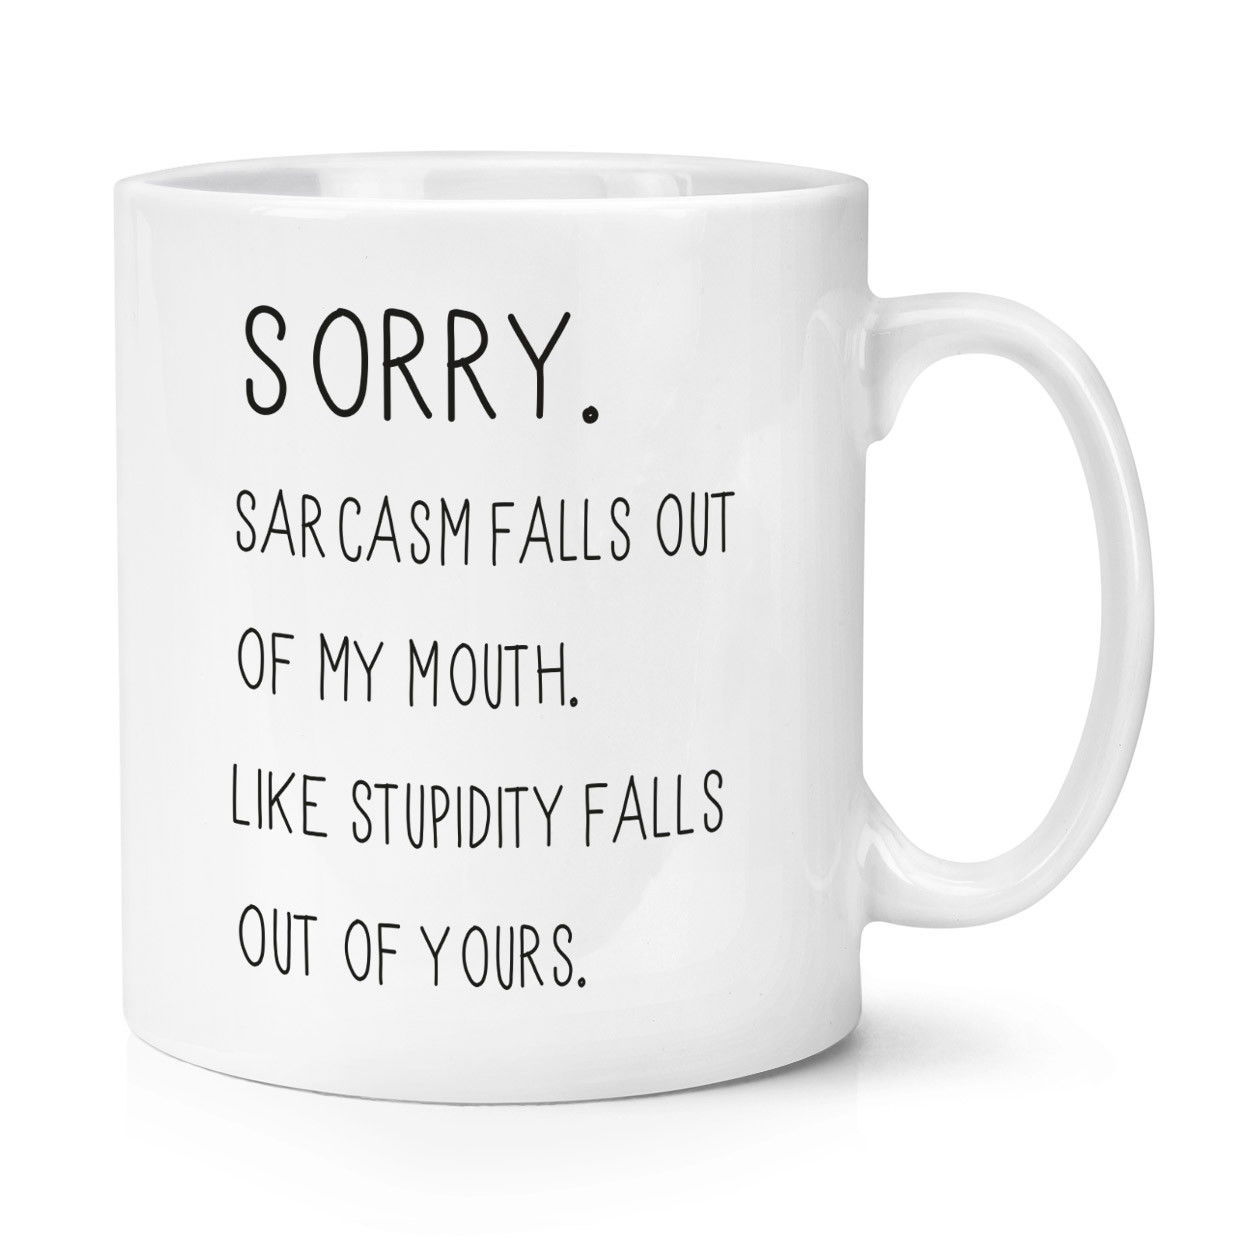 Sorry Sarcasm Falls Out of My Mouth 11oz Coffee Mug Cup with Stirring Spoon - Funny Joke Rude taza de m&m